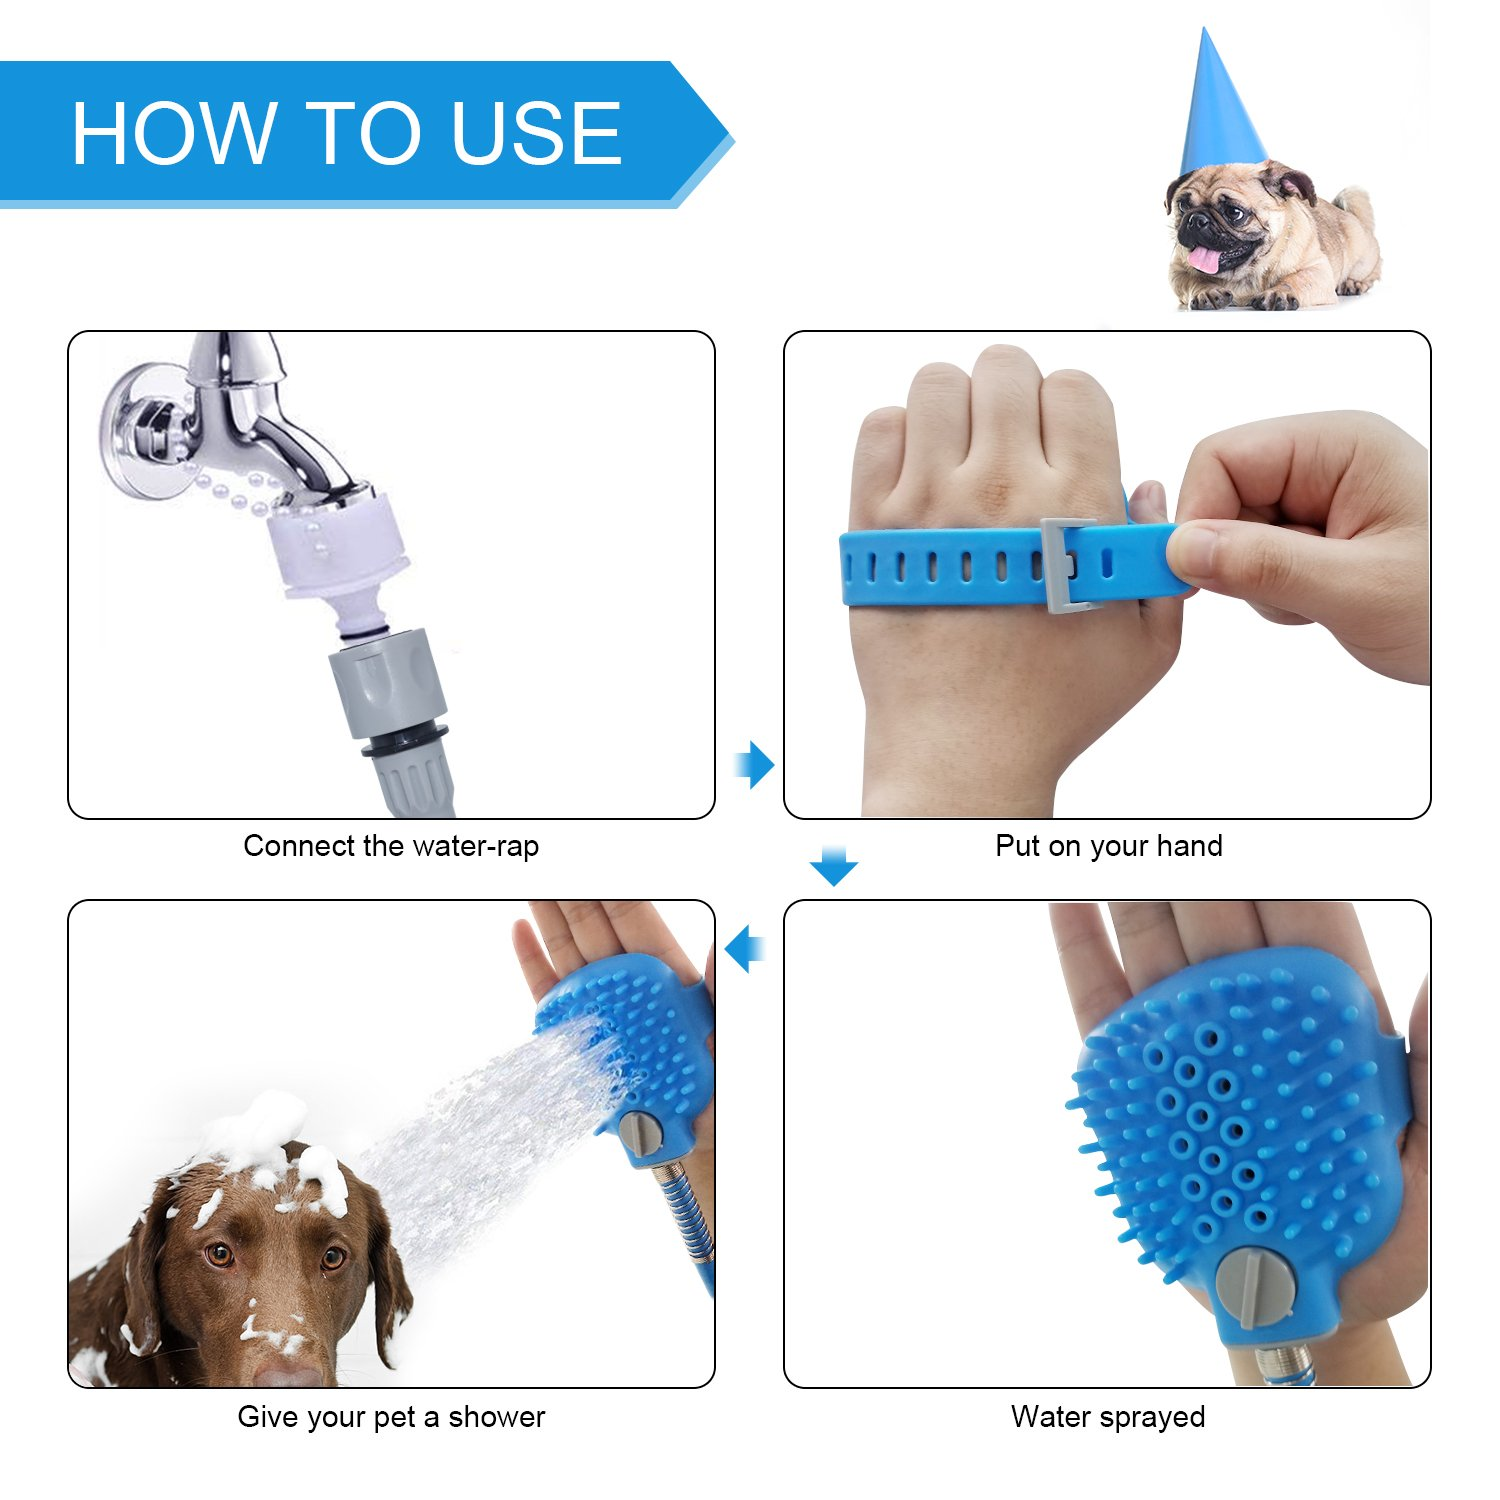 Pet Shower Tool with Nozzle, loveone(TM) Dog Bathing Sprayer with 3 Hose Adapters, Portable Grooming Tools Adjustable Silicone Massage Brush for Dogs/ Cats/ Horses/ Animals Suit for Outdoor/ Indoor by loveone (Image #3)